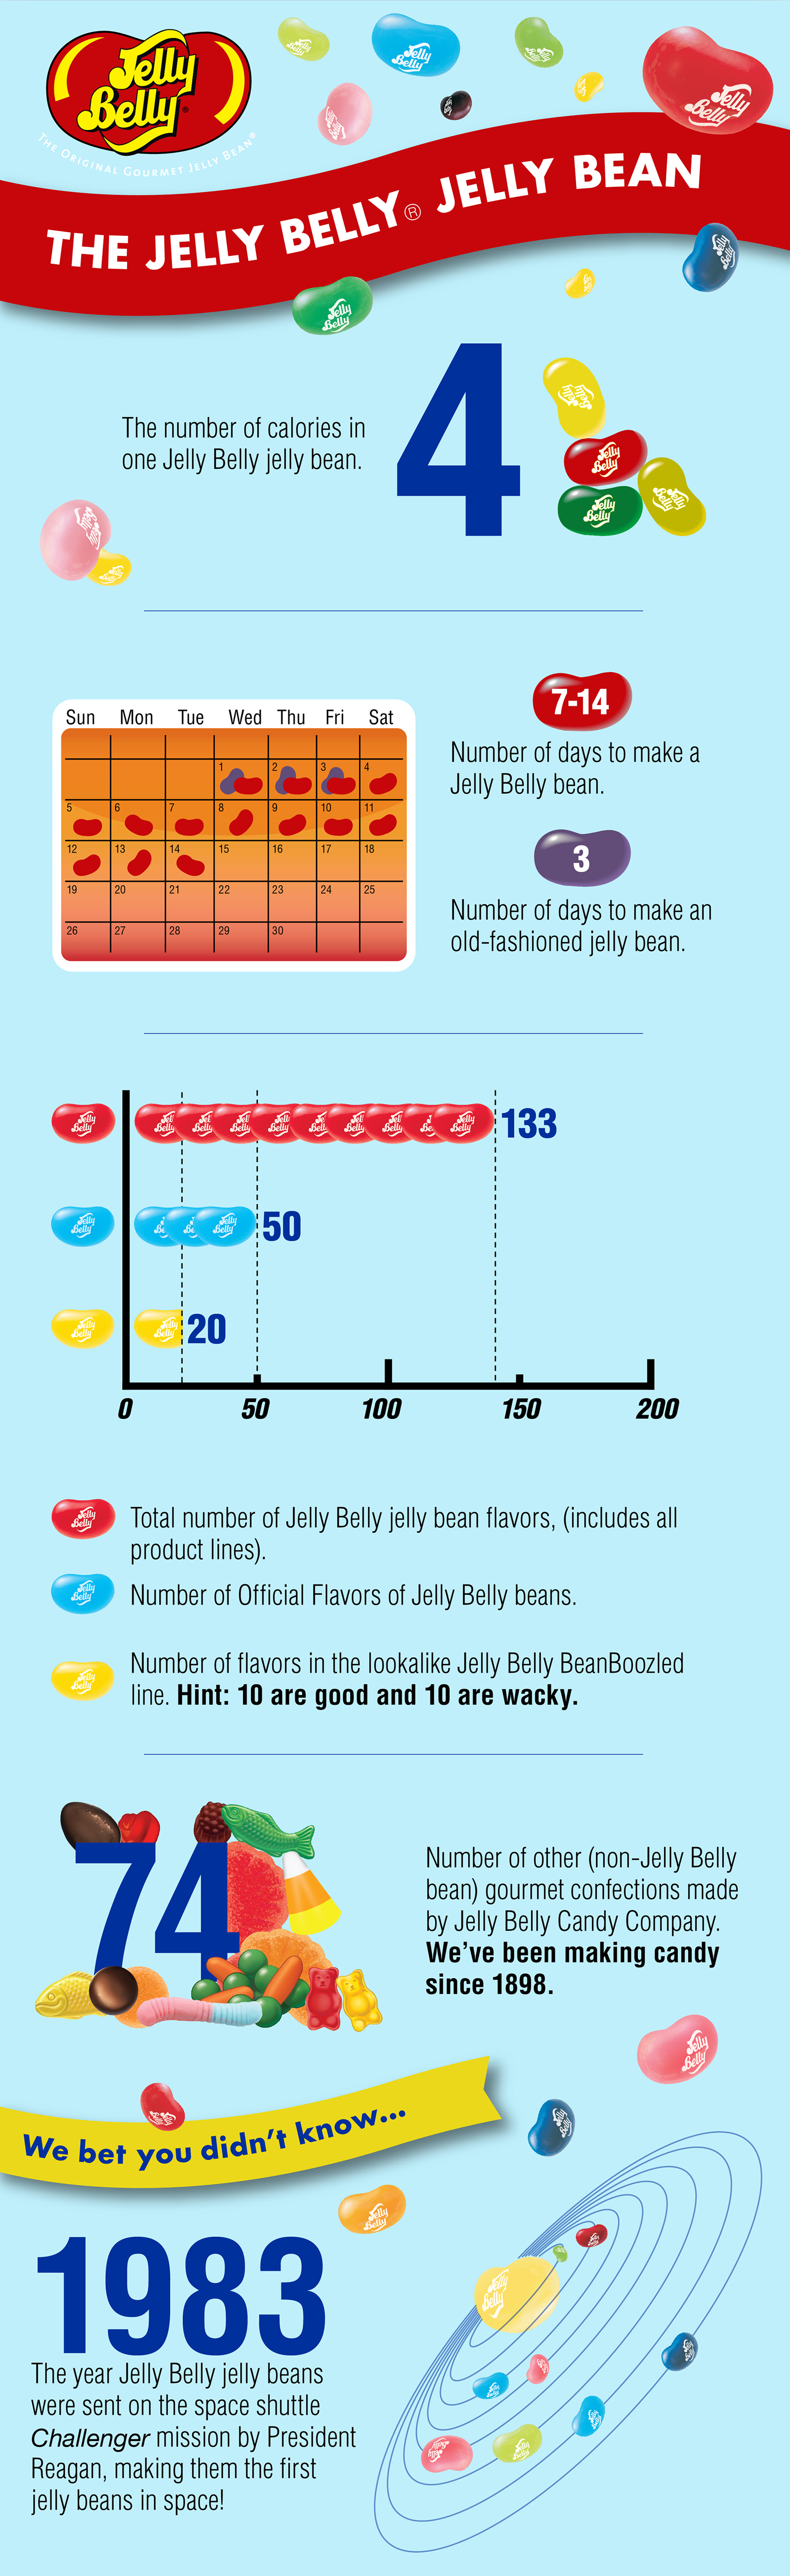 Jelly Belly Bean Basics Infographic